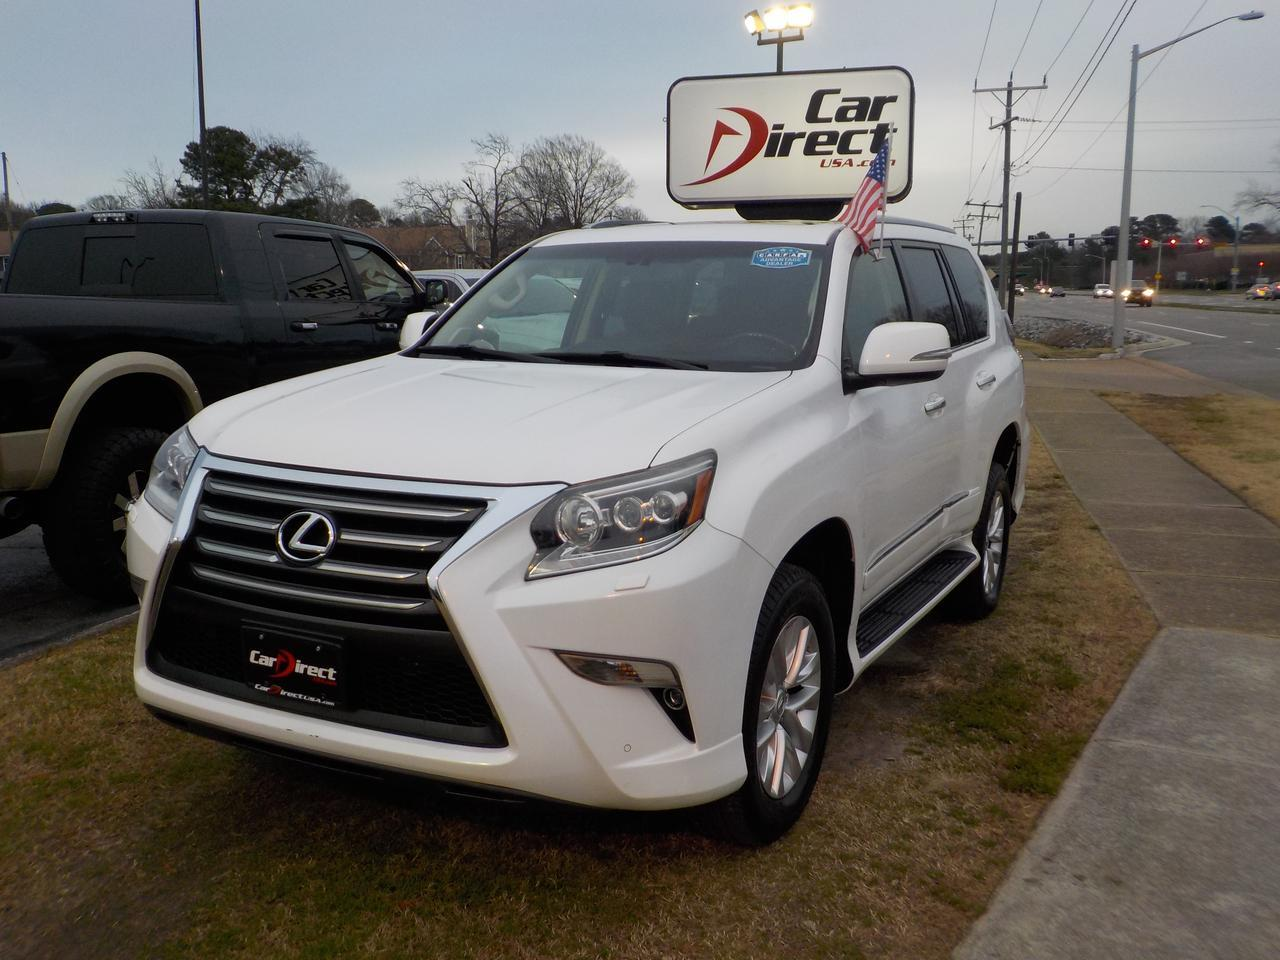 2014 LEXUS GX 460 4X4, ONE OWNER, HEATED LEATHER SEATS, NAVIGATION, BACK UP CAM, SUNROOF, BLUETOOTH, ONLY 60K MILES! Virginia Beach VA